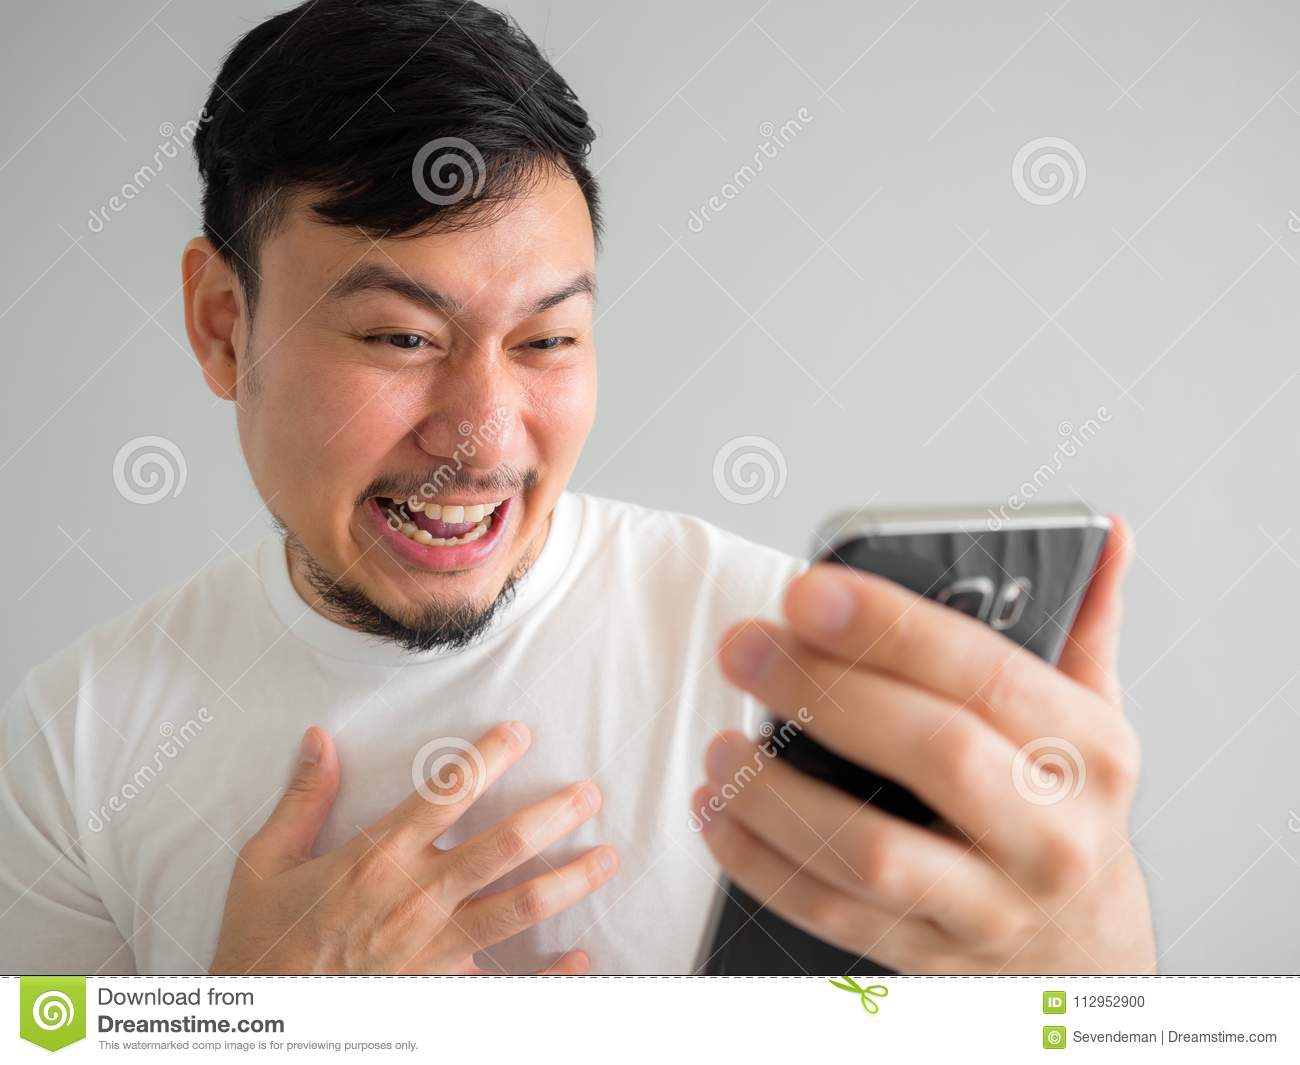 Funny laugh face of man watching funny video clip share in social in the smartphone.